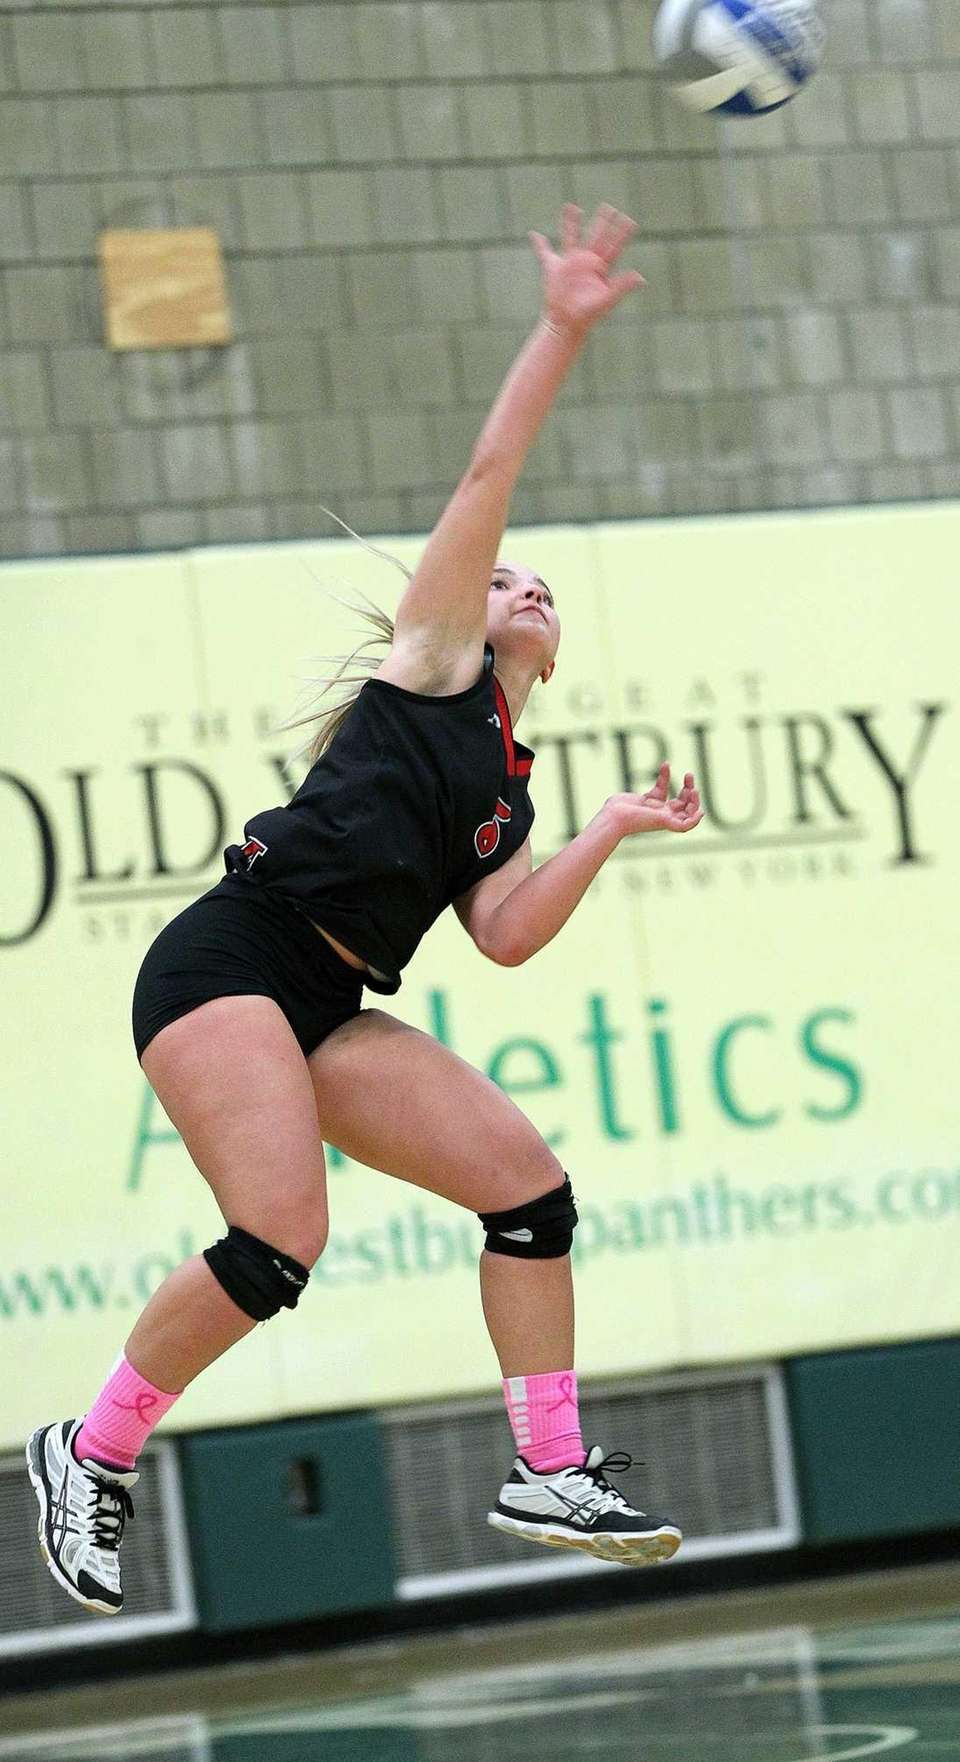 Long Beach's Dakota O'Neill fires up a serve